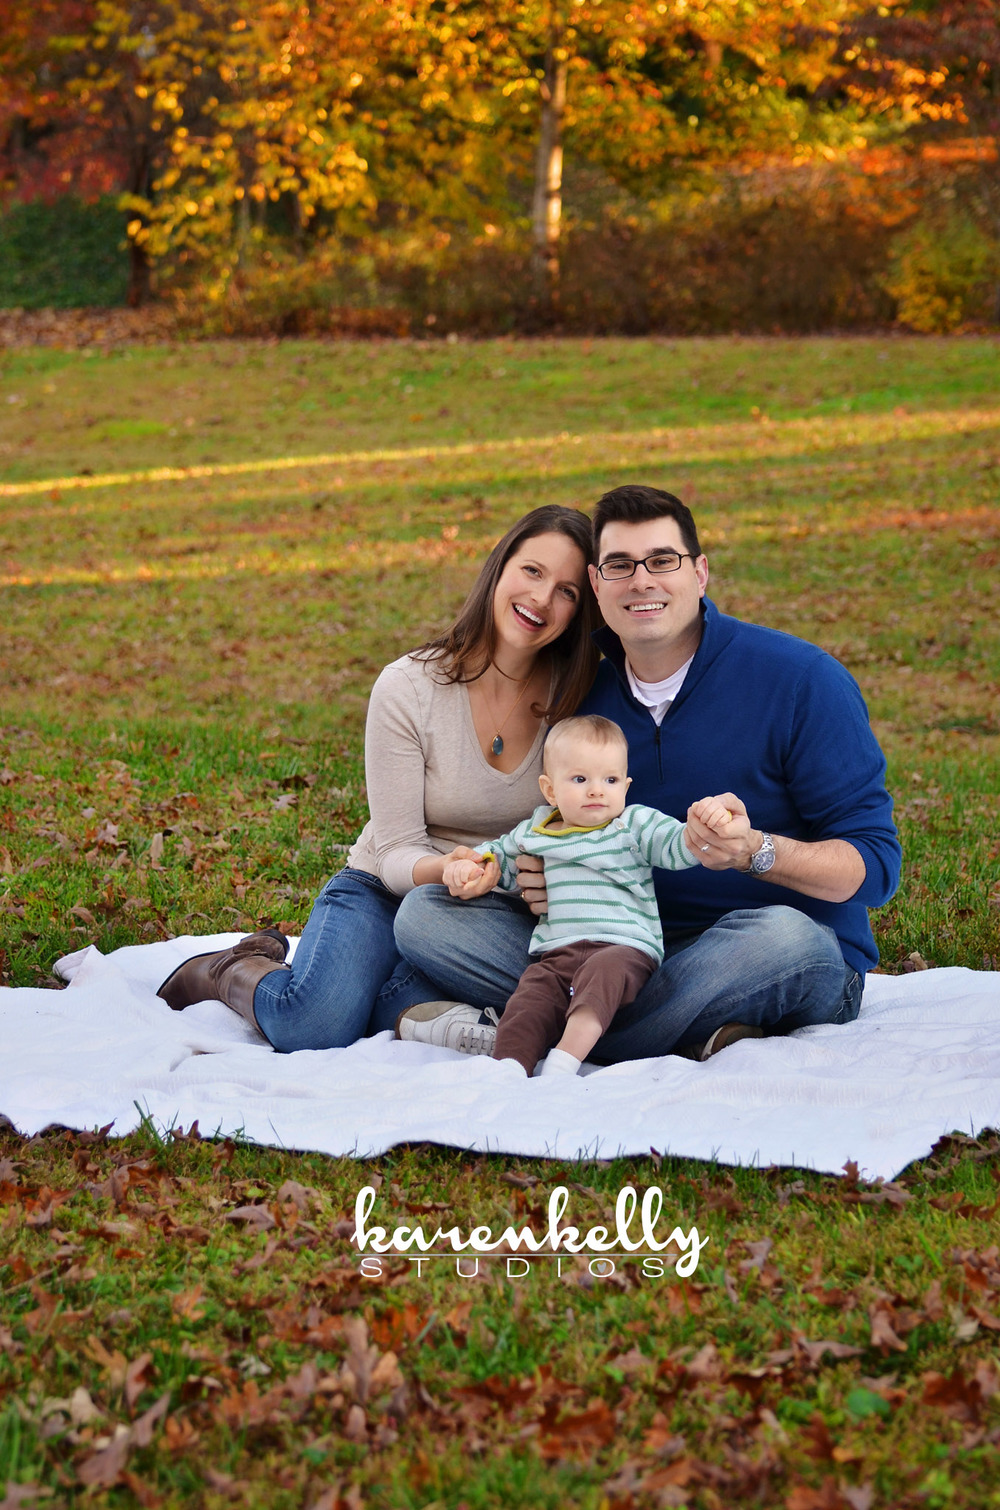 karen kelly studios - fox family mini session 13fb.jpg